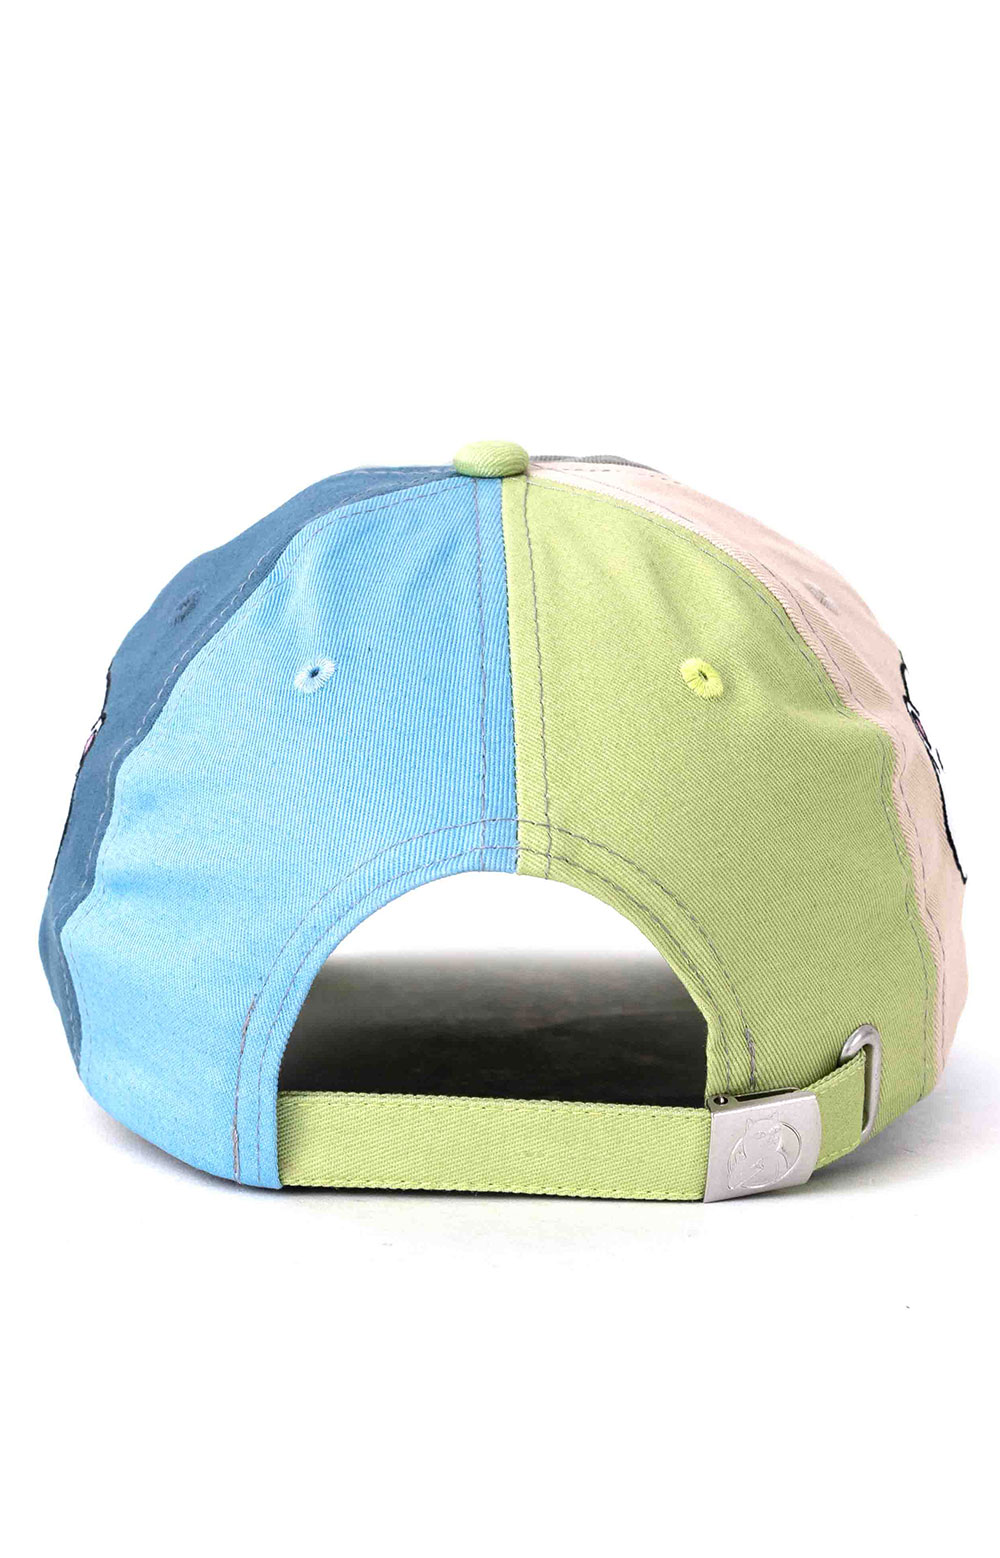 Expressions Strap-Back Hat - Multi 3